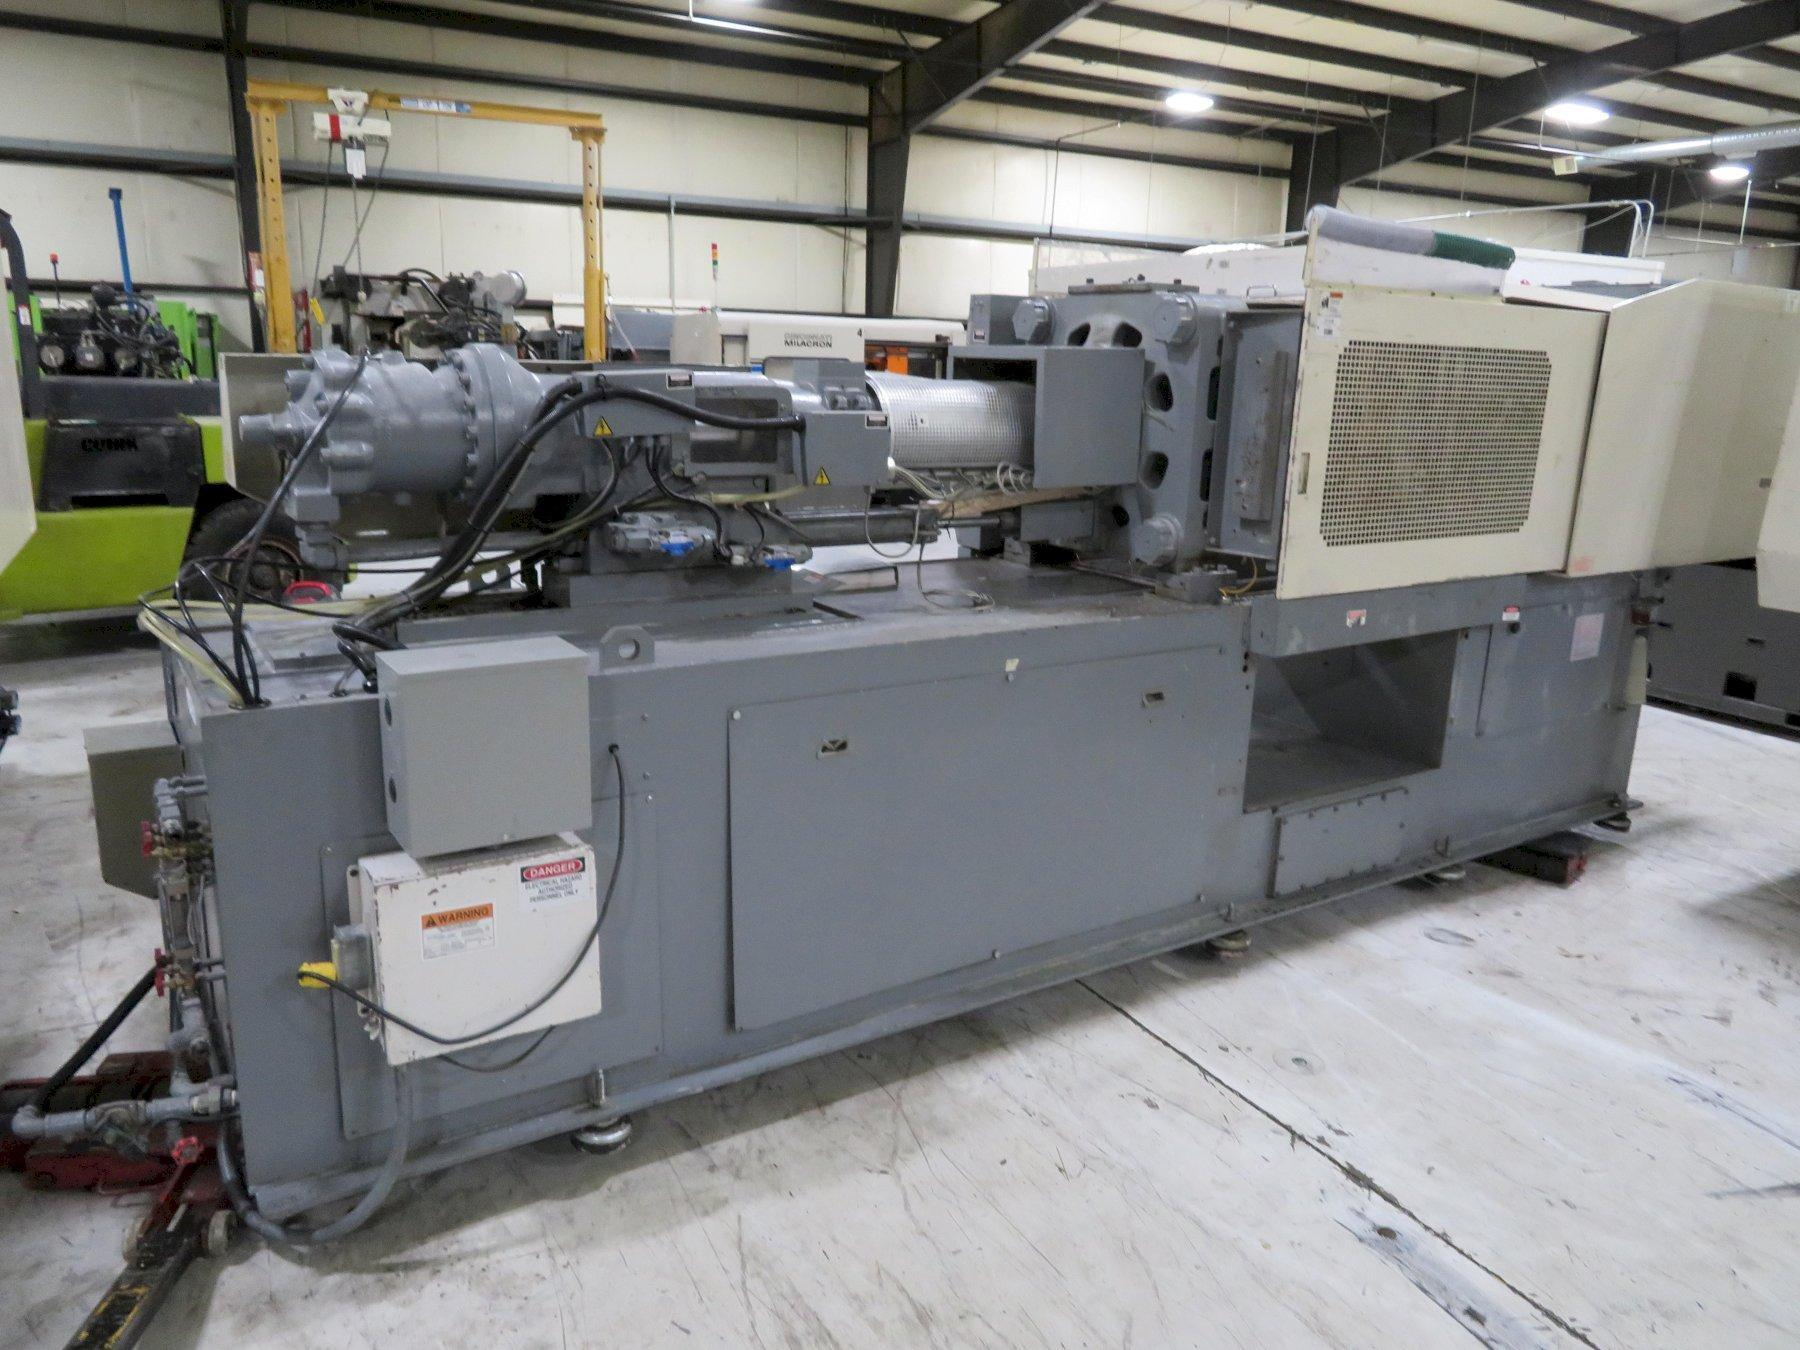 Nissei Used FN3000-25A Injection Molding Machine, 154 US ton, Yr. 2000, 10.5 oz., 460V